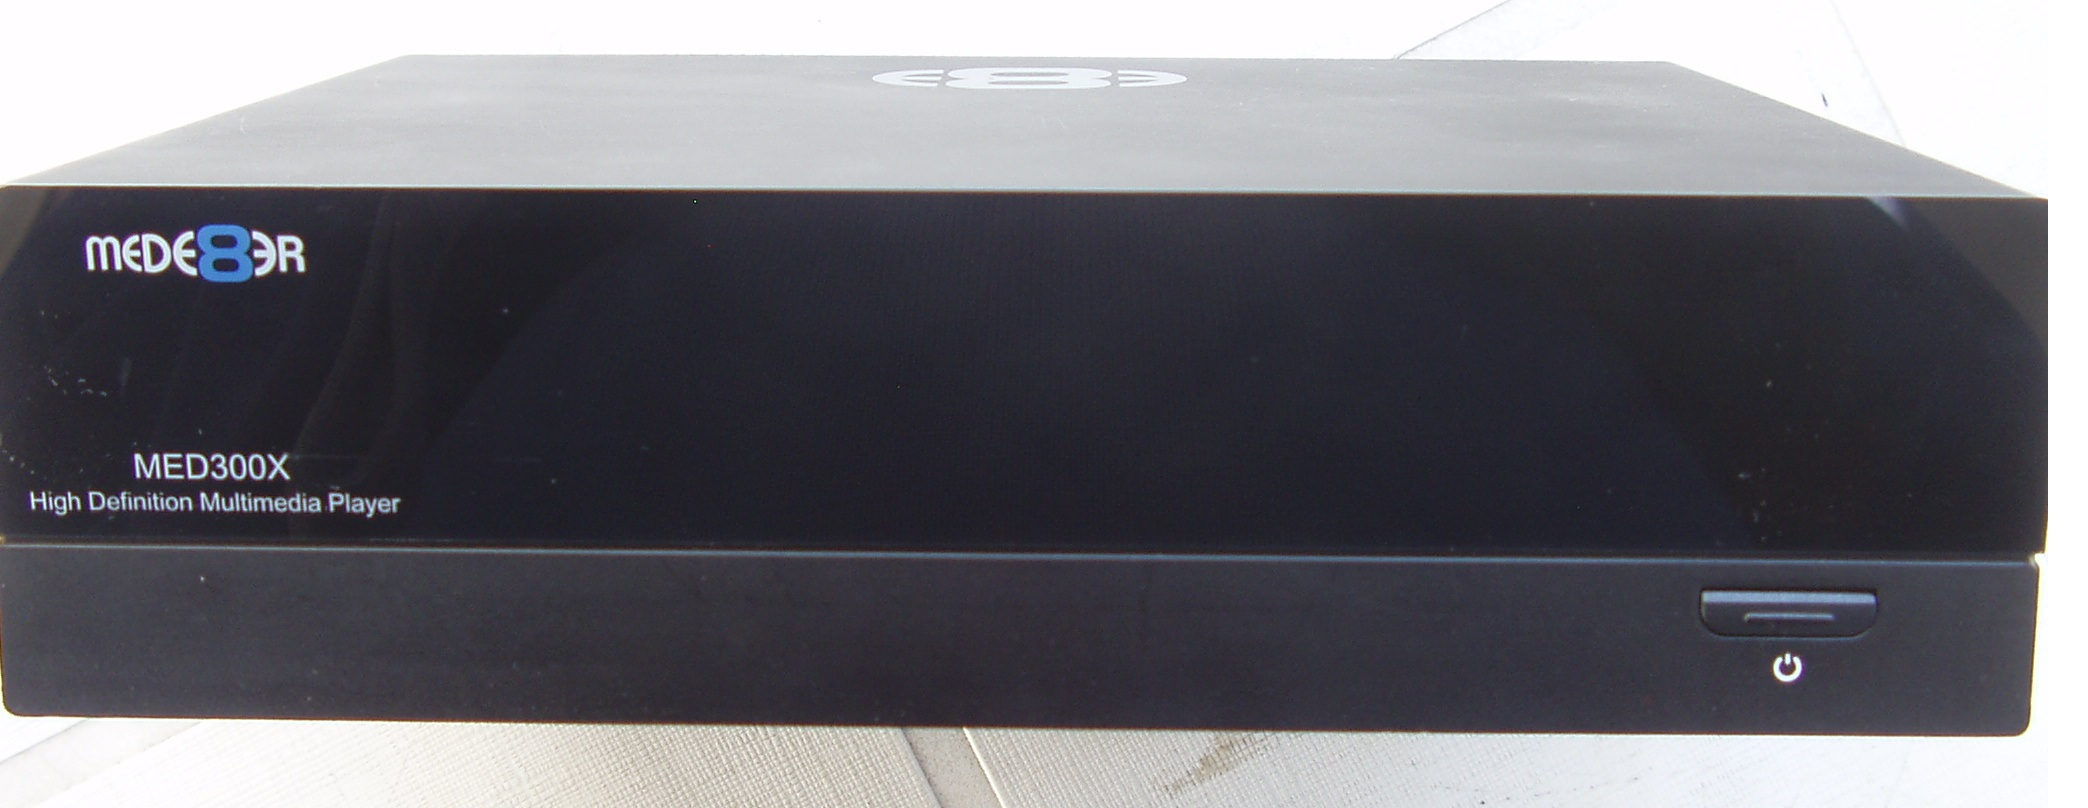 Mede8er MED300X multimedia player - with power cord